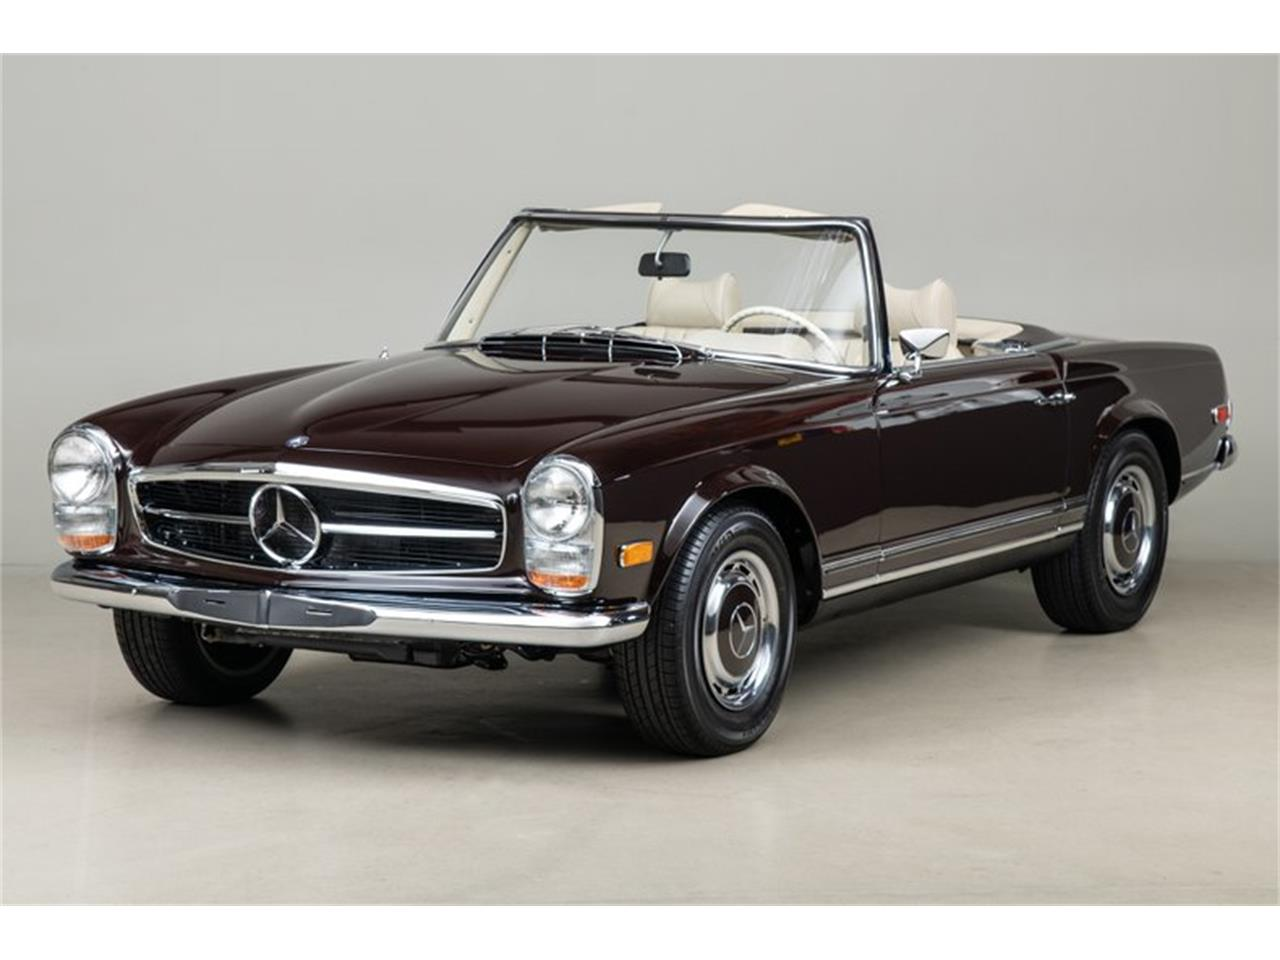 Large Picture of Classic '69 280SL located in Scotts Valley California Auction Vehicle Offered by Canepa - QALE